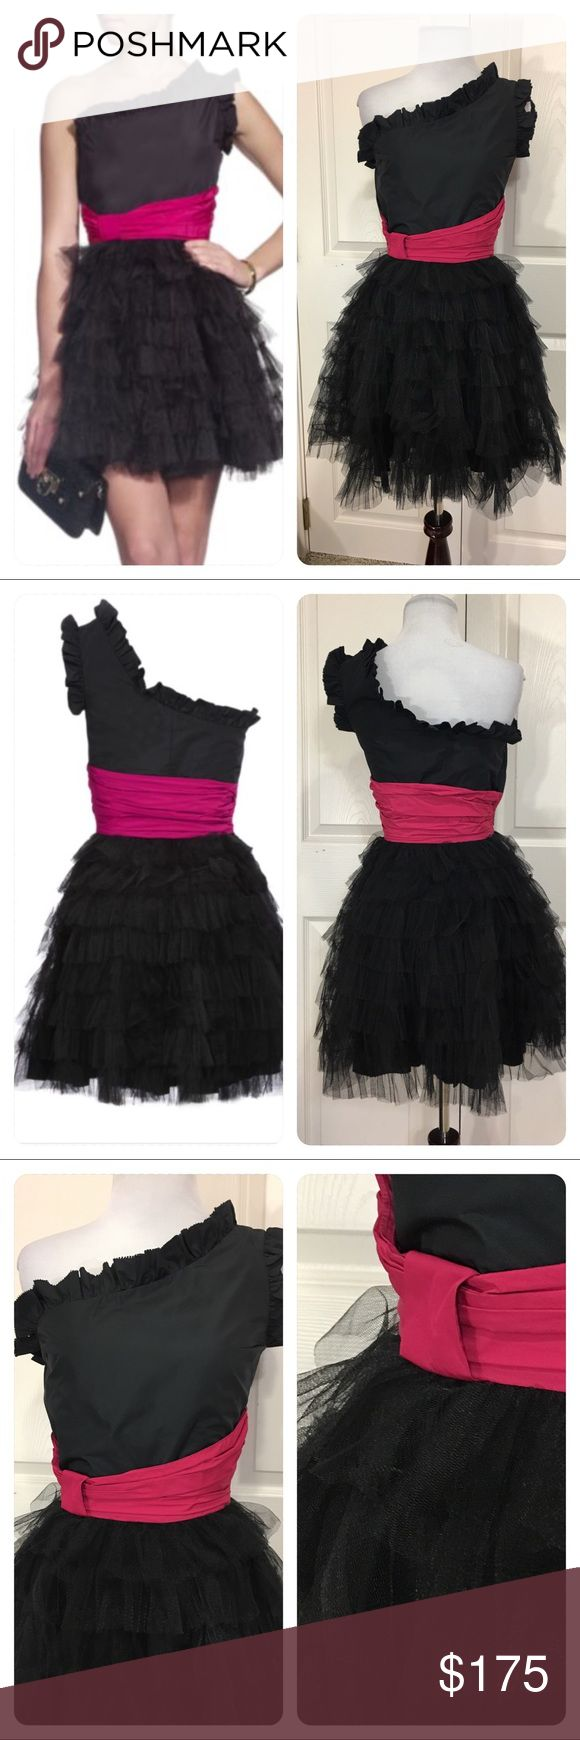 NWT!  Red Valentino black one shoulder dress New with tags!  Gorgeous one shoulder black dress with pink waist sash. Side zipper. Tiers of tulle.  Dress is a 2. It's a Little to small for the dress mannequin. Last seen on sale at Harrods for $822. RED Valentino Dresses One Shoulder